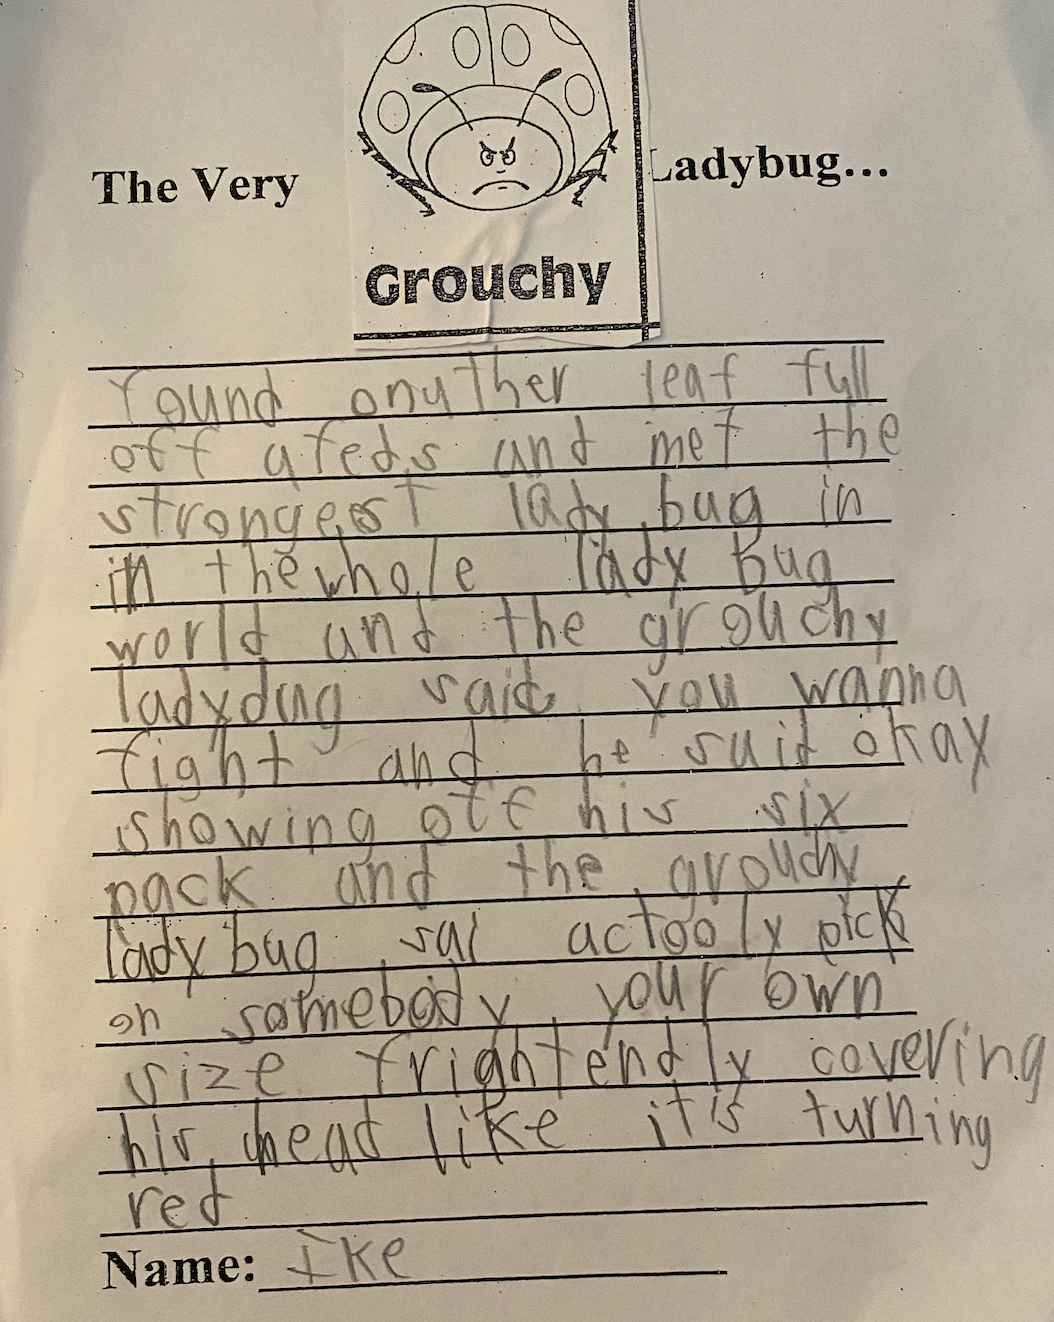 """TRANSCRIPTION: The Very Grouchy Ladybug … found another leaf full off (sic) afeds (sic) and met the strongest ladybug in the whole ladybug world[.]   [A]nd the grouchy ladybug said 'you wanna fight[?""""] and he said """"okay,"""" showing off his six-pack, and the grouchy ladybug said """"actooly (sic) pick on somebody your own size[,""""] frightenedly covering his head like it is turning red."""